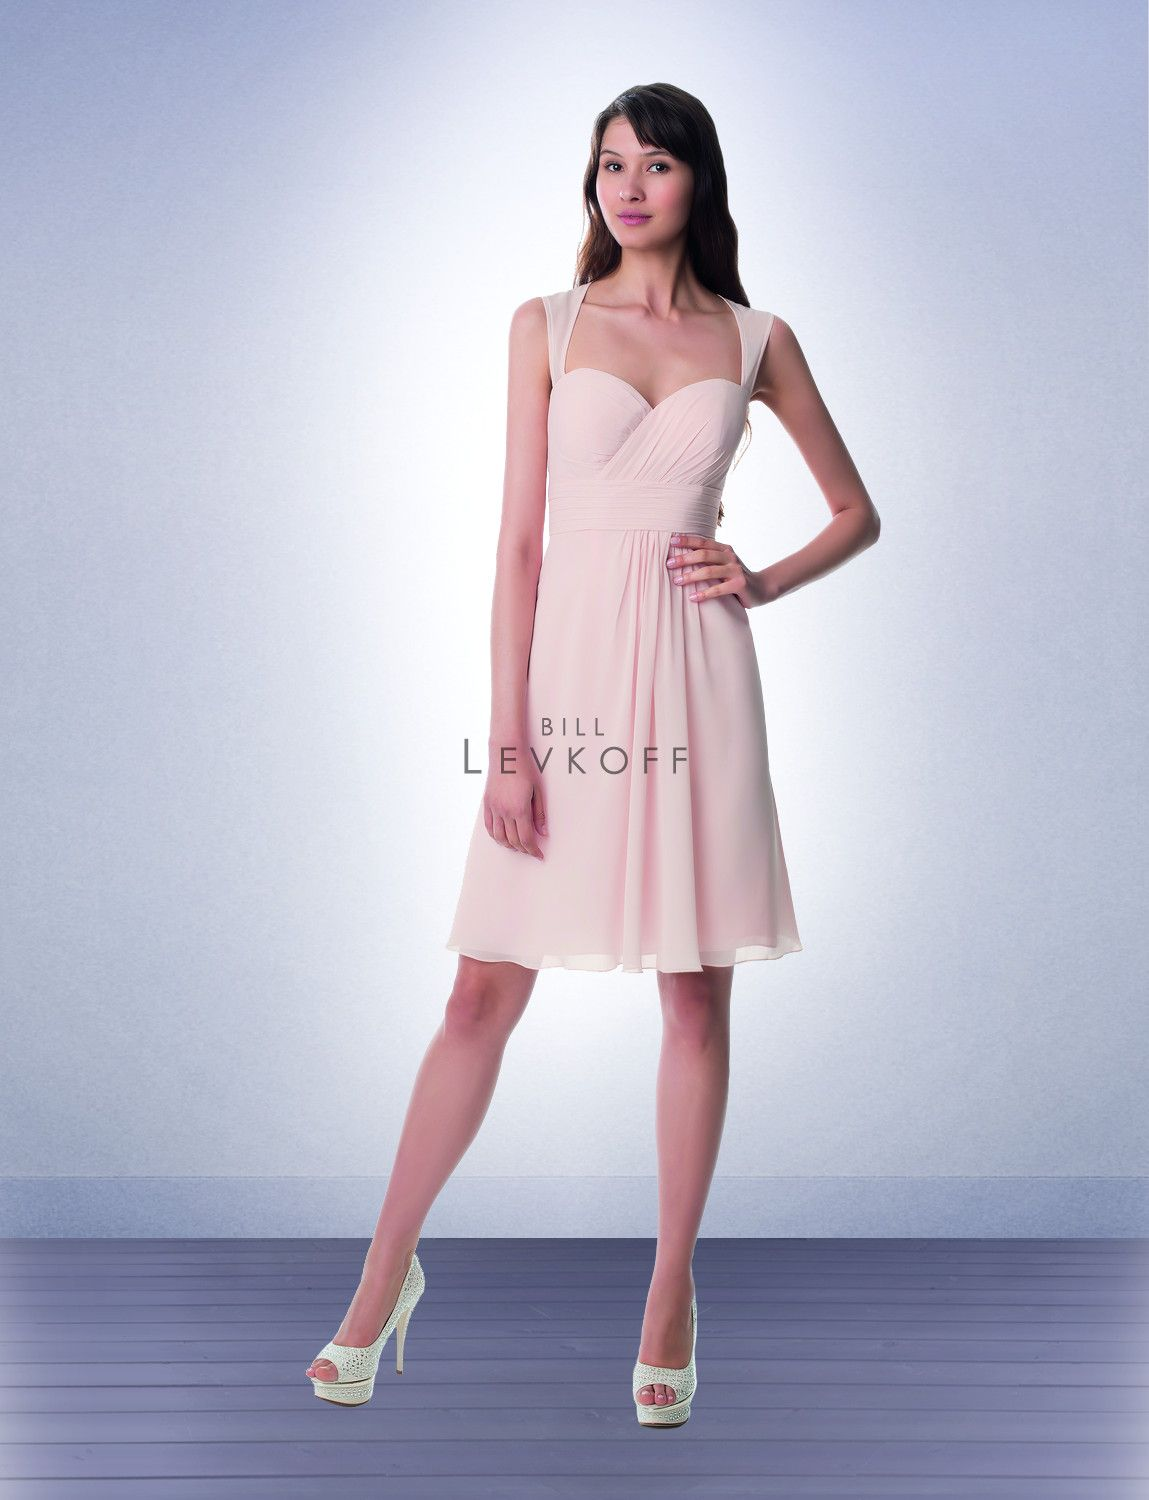 Bridesmaid dress style 990 bridesmaid dresses by bill levkoff bridesmaid dress style 990 bridesmaid dresses by bill levkoff bridesmaids pinterest bridesmaid dress styles ombrellifo Gallery